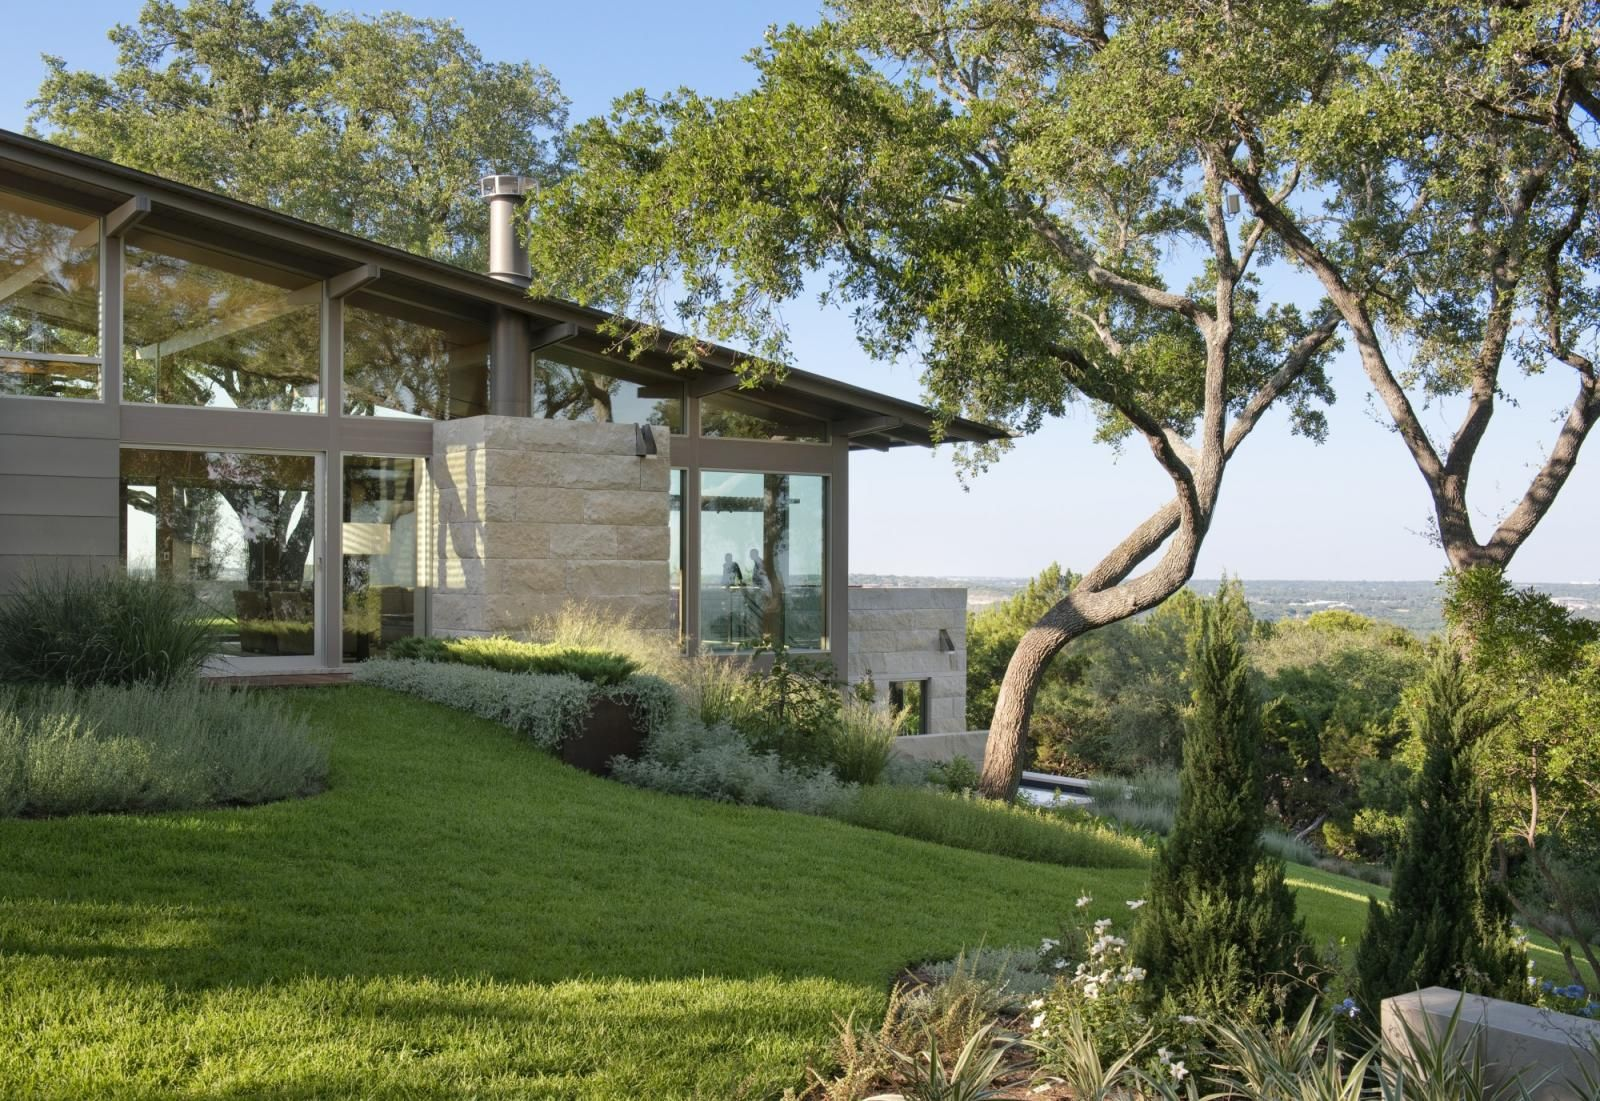 Situated On A Steep Hill With Stunning Views Of Downtown Austin